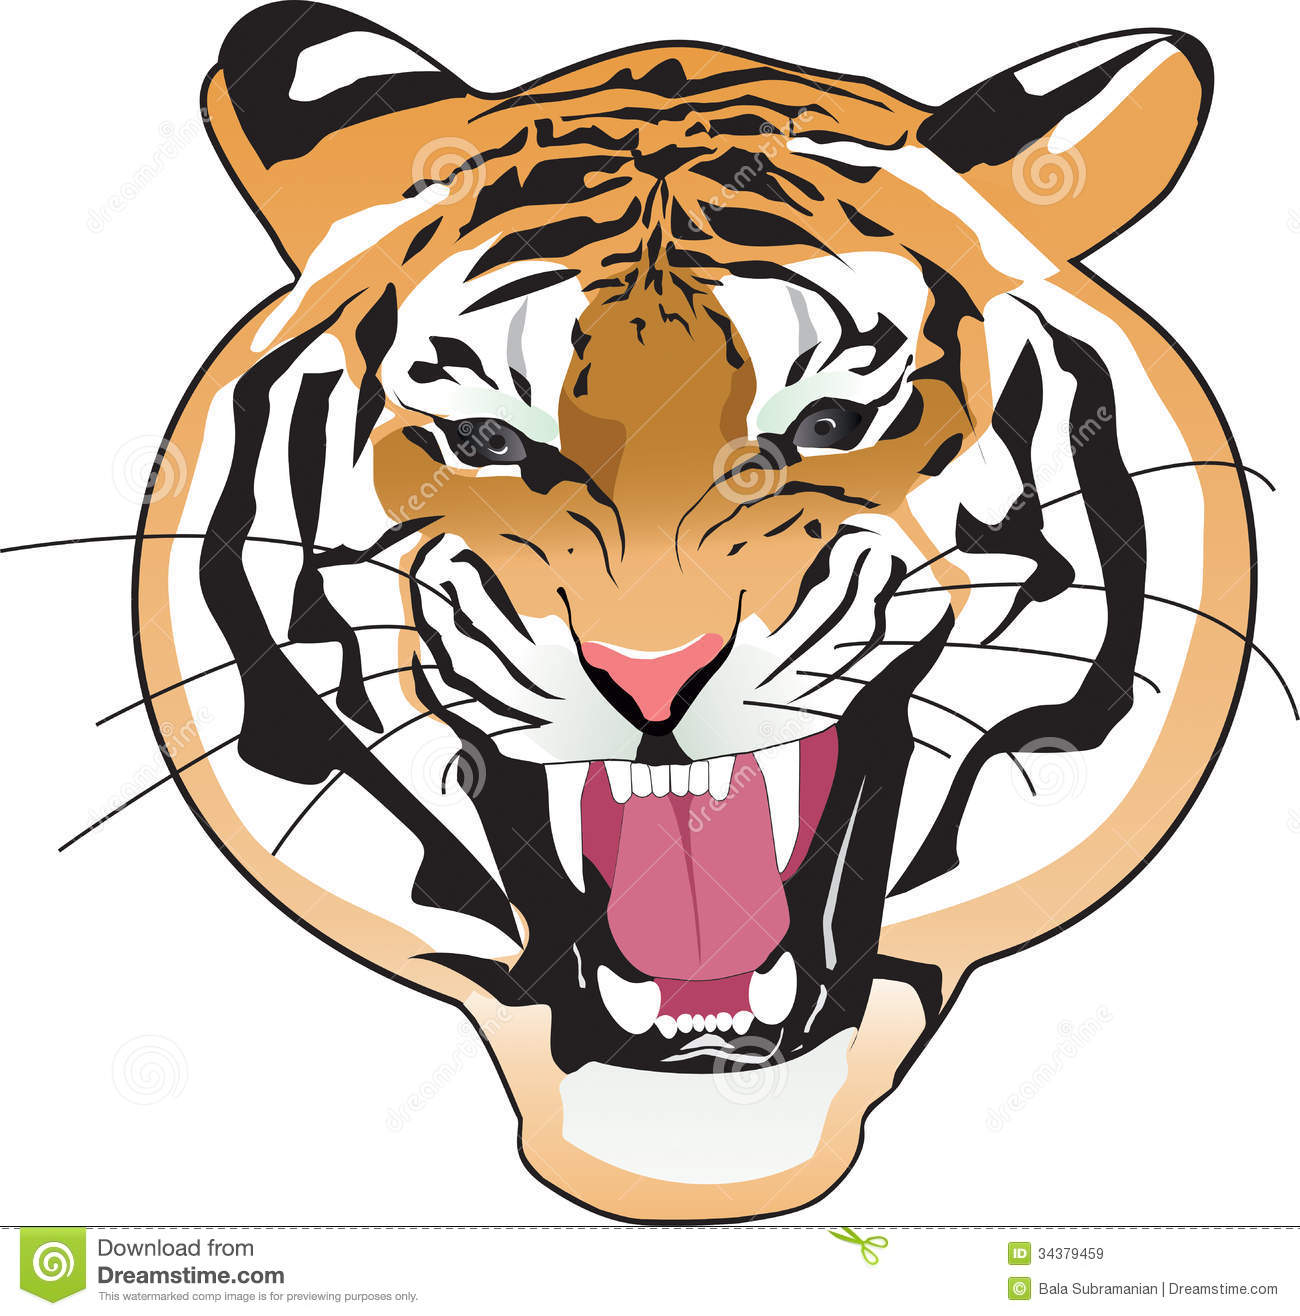 Tiger Clipart Outline | Clipart Panda - Free Clipart Images: www.clipartpanda.com/categories/tiger-clipart-outline